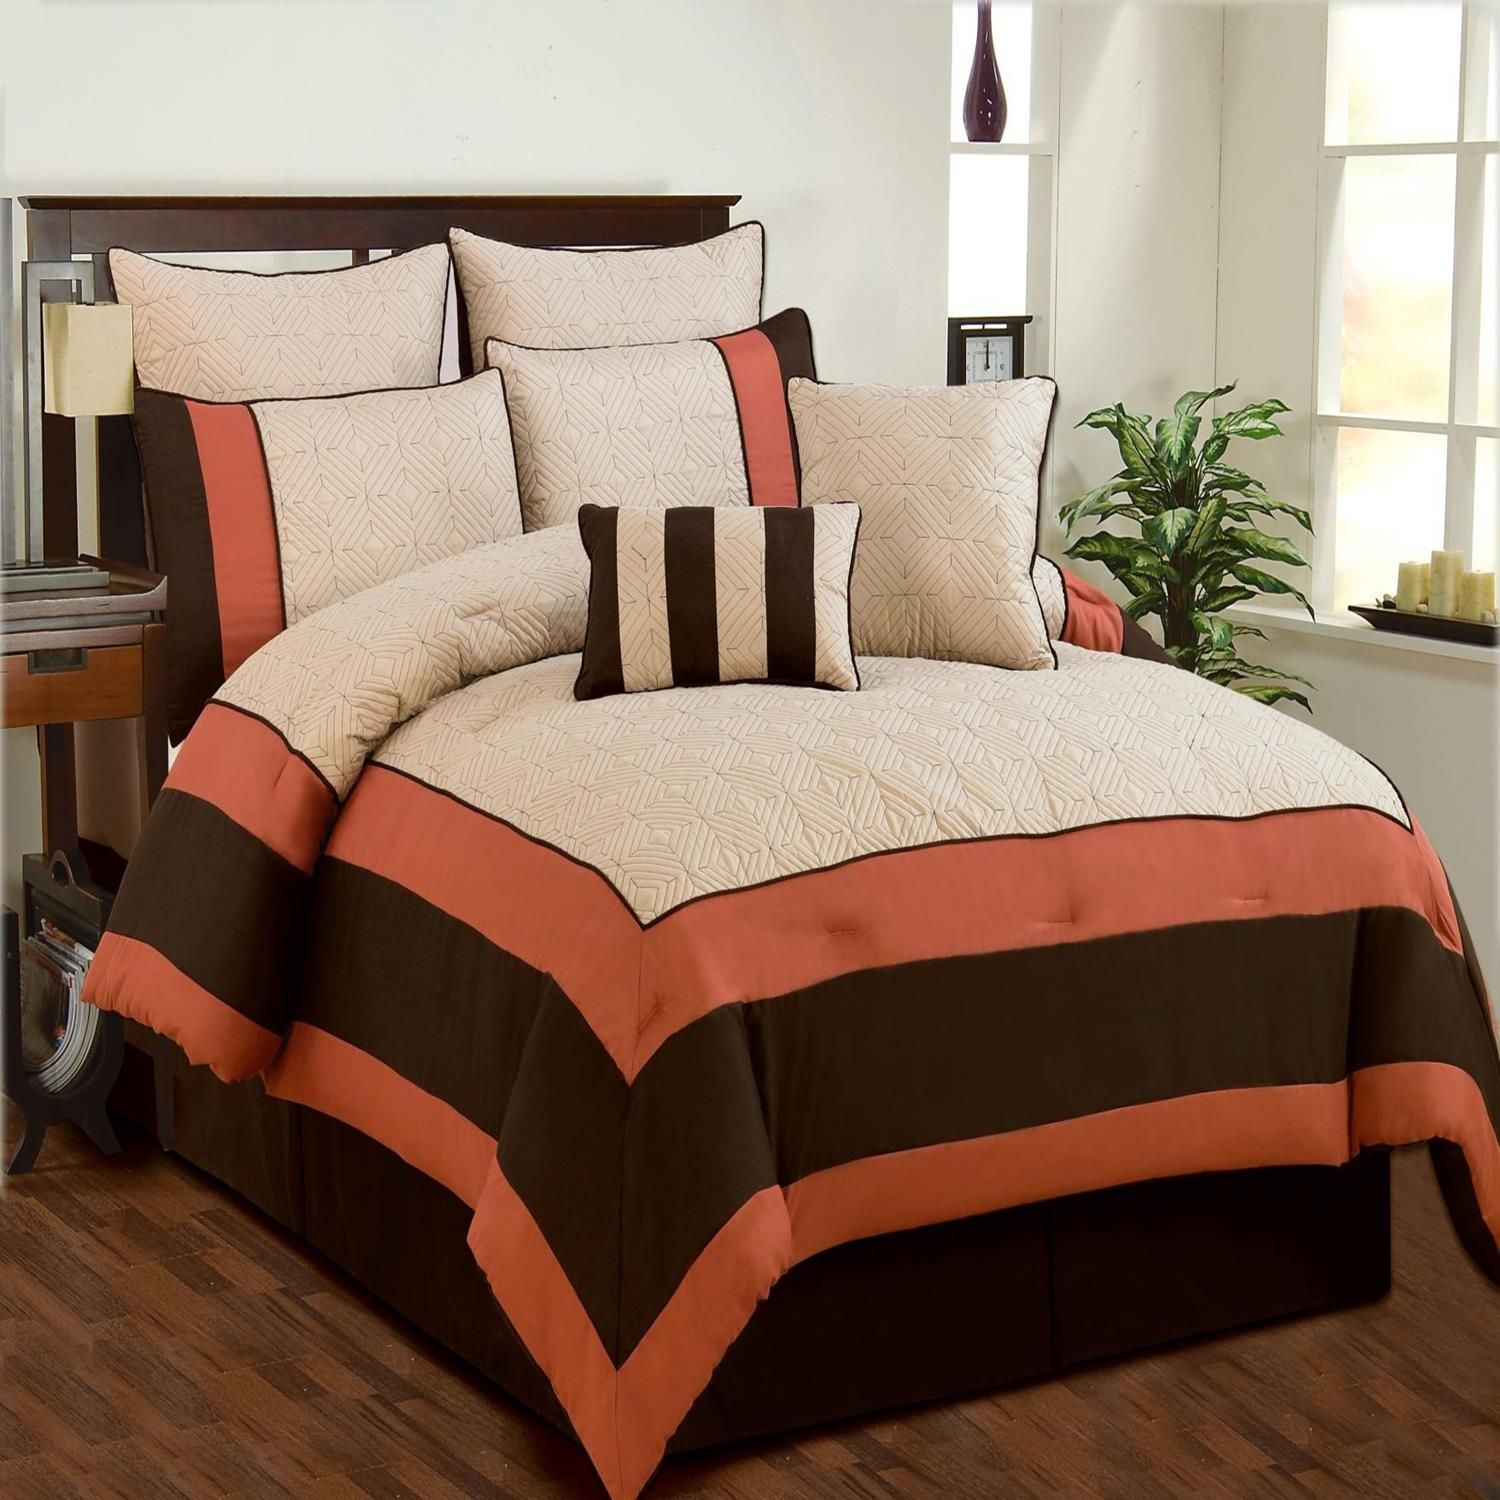 Coral And Brown Bedroom Aspen Beige Brown Coral Quilted